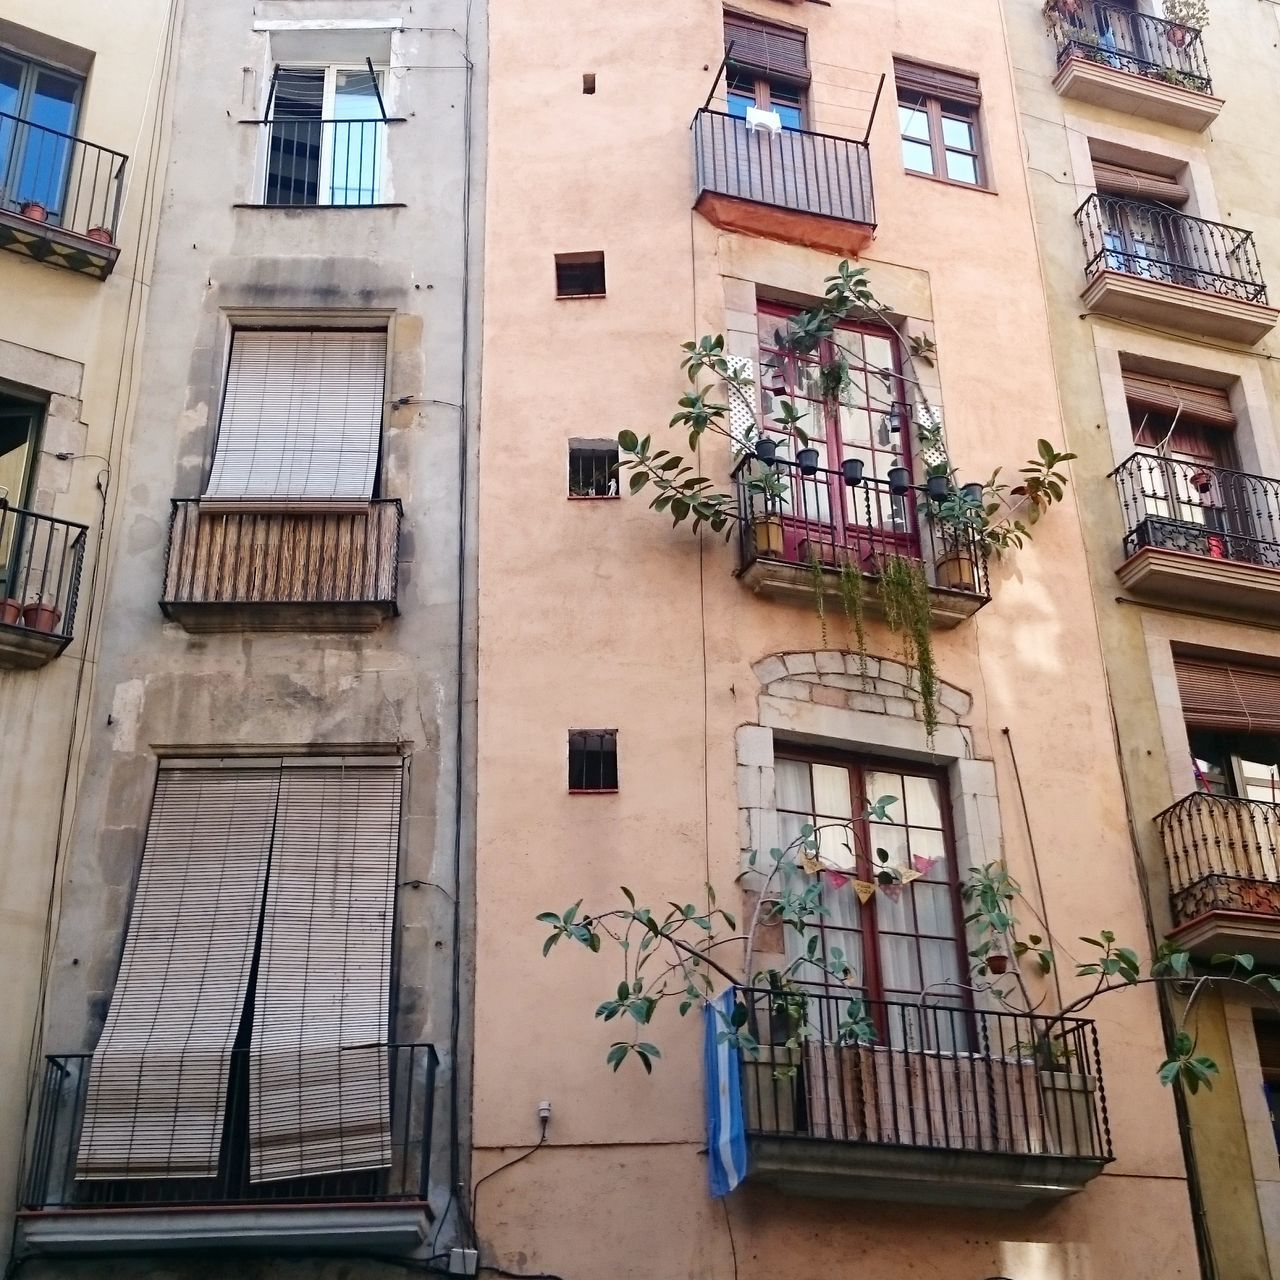 architecture, building exterior, window, balcony, built structure, low angle view, residential building, no people, day, outdoors, window box